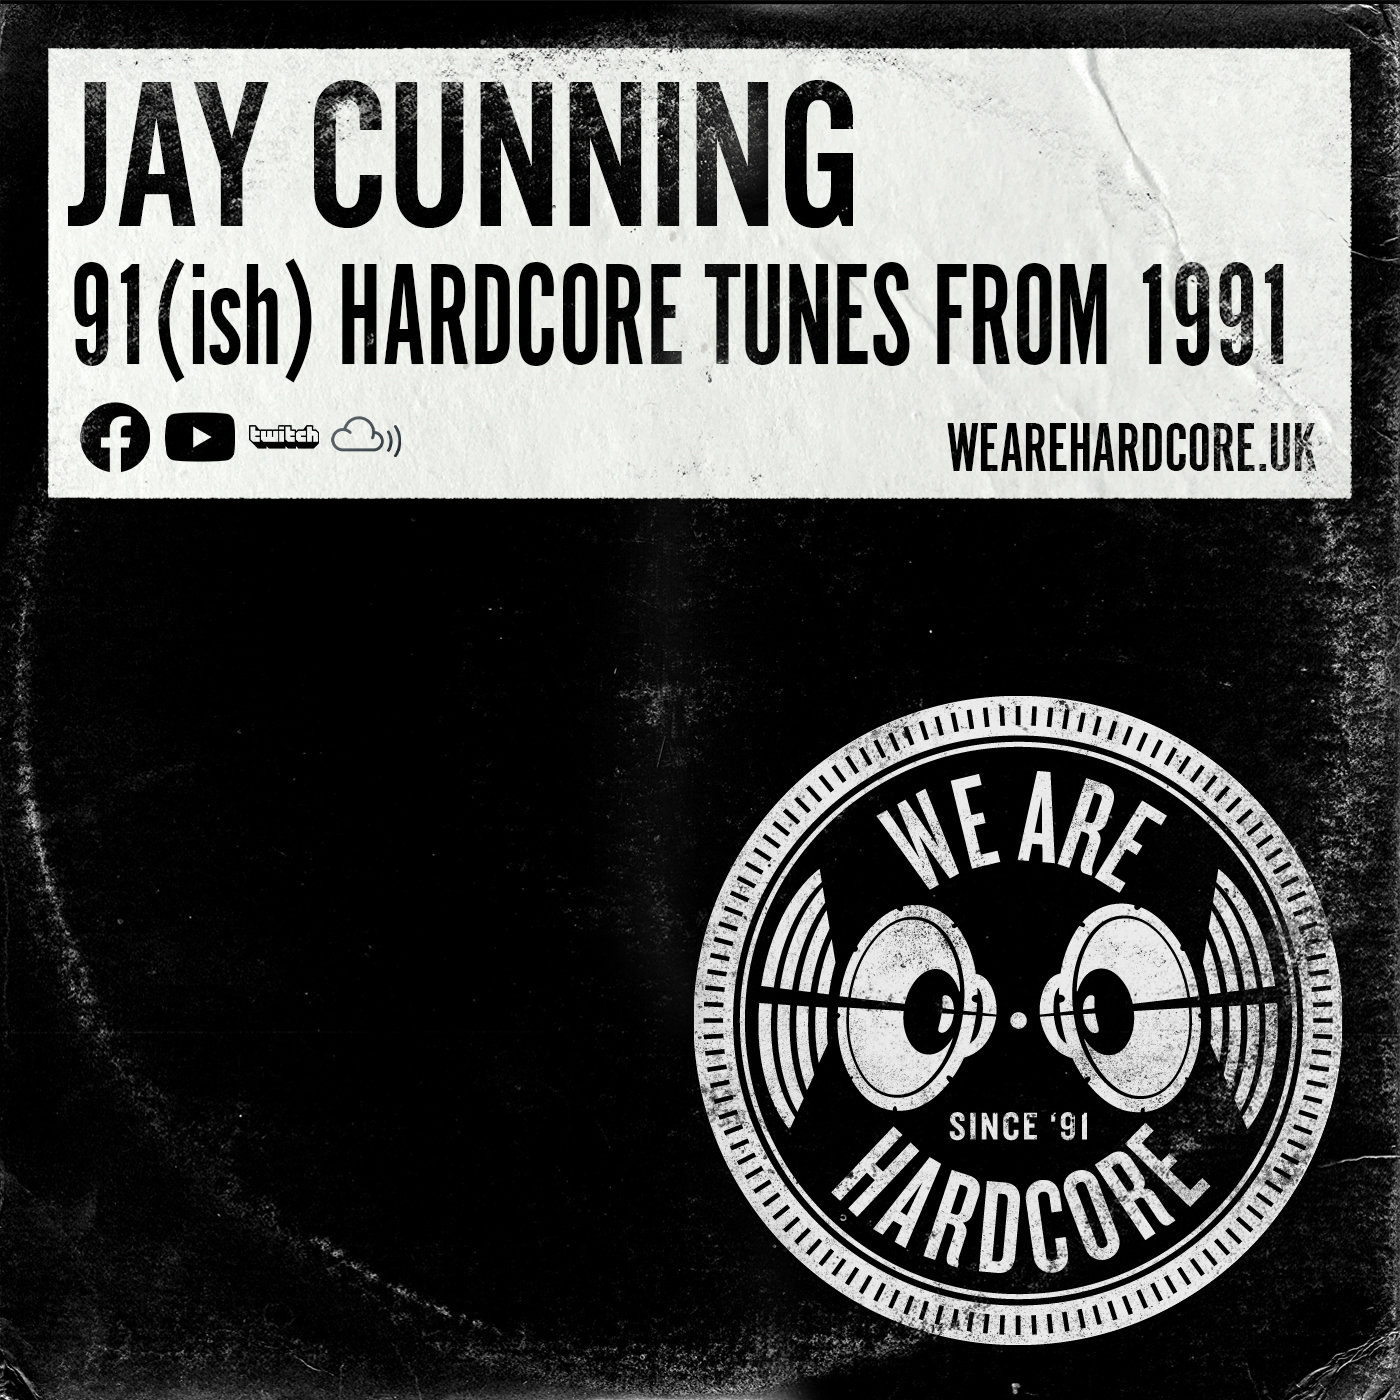 91 Hardcore Tunes from 1991 - Jay Cunning - WE ARE HARDCORE